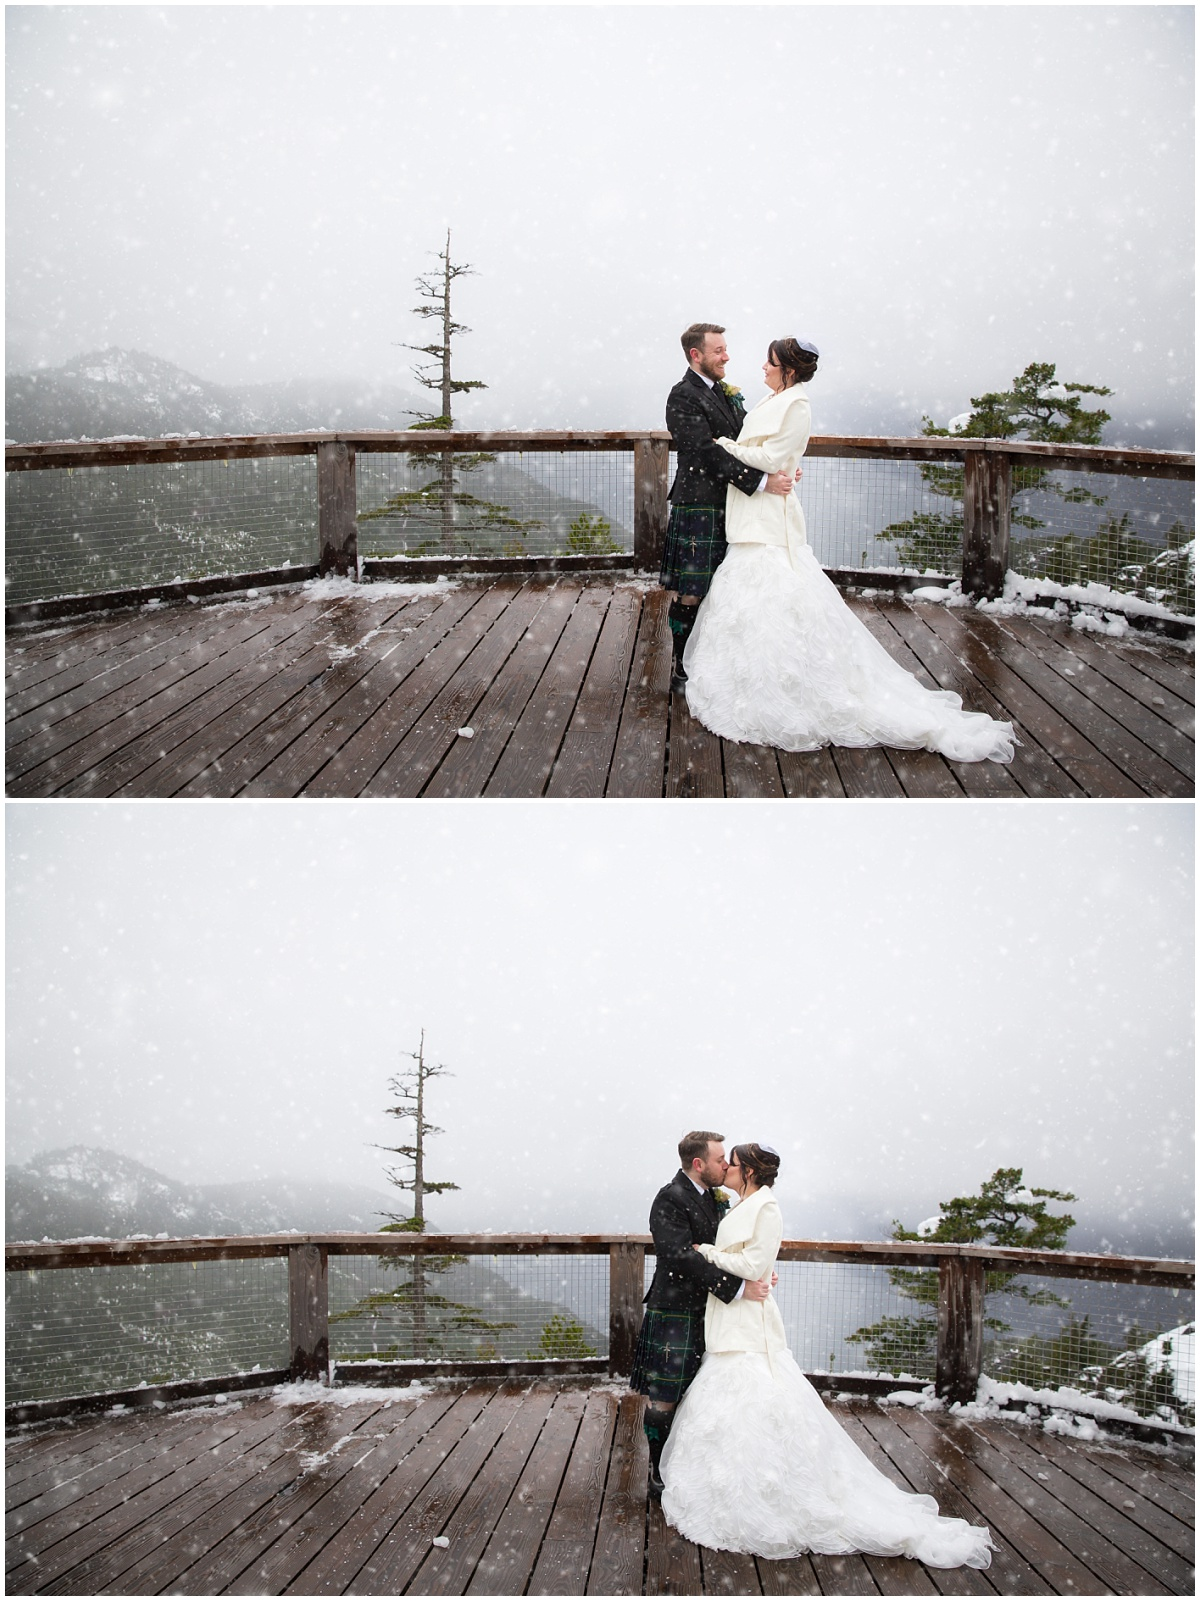 Amazing Day Photography - Squamish Wedding - Howe Sound Inn Wedding - Sea to Sky Gondola Wedding - Squamish Wedding Photographer - Winter Wedding - Snowy Wedding (8).jpg